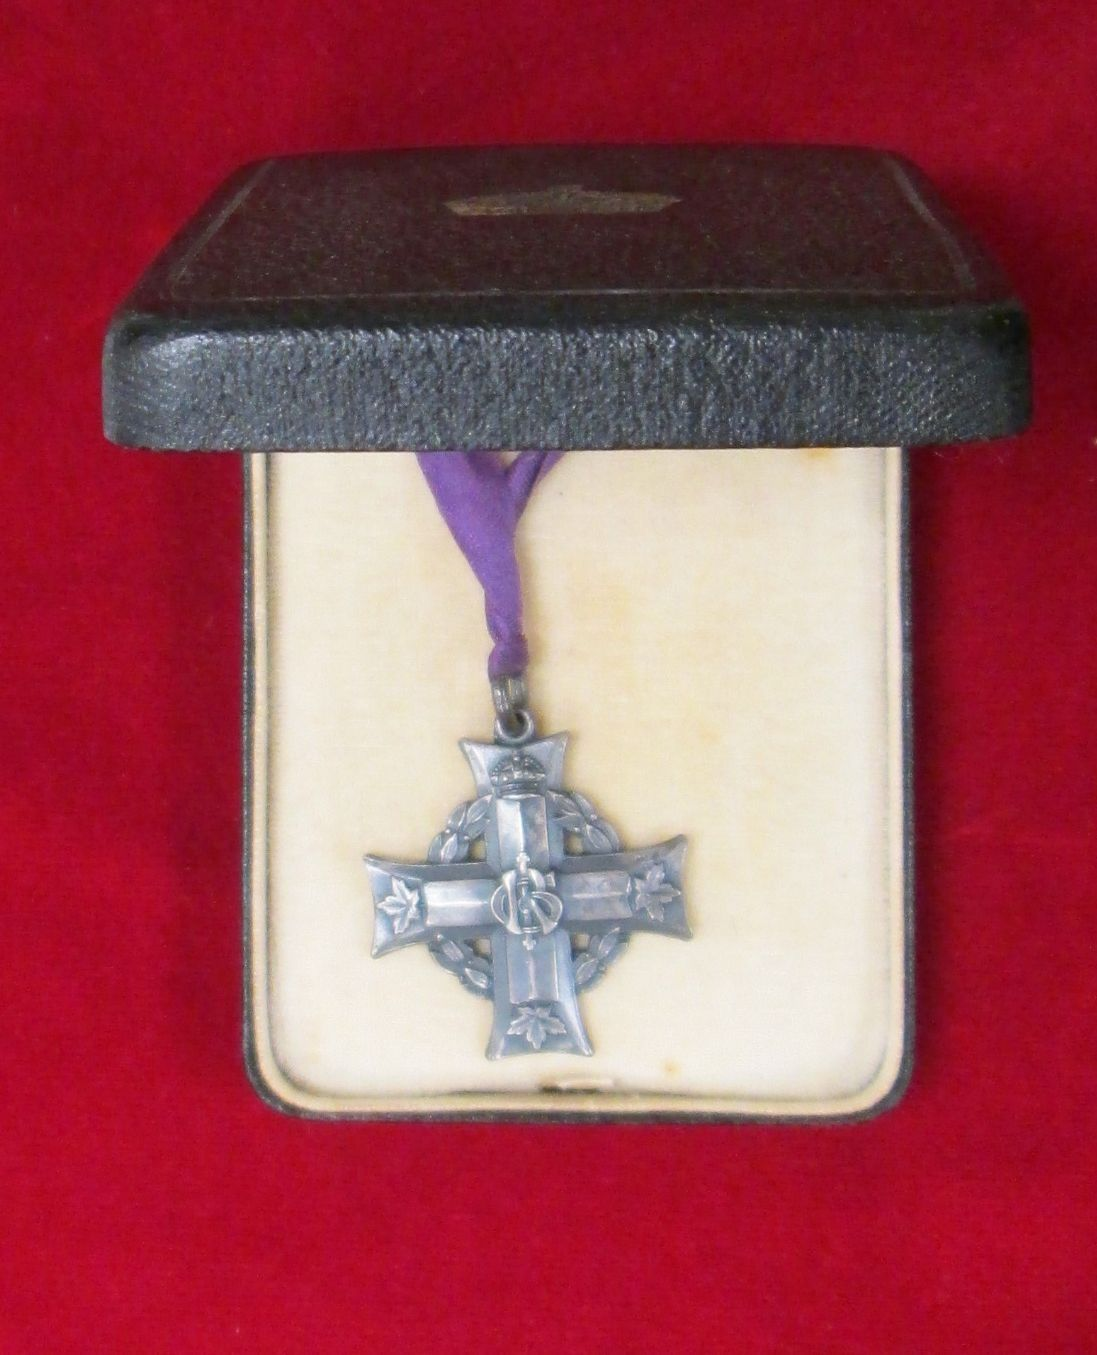 Memorial Cross – Submitted for the project, Operation: Picture Me